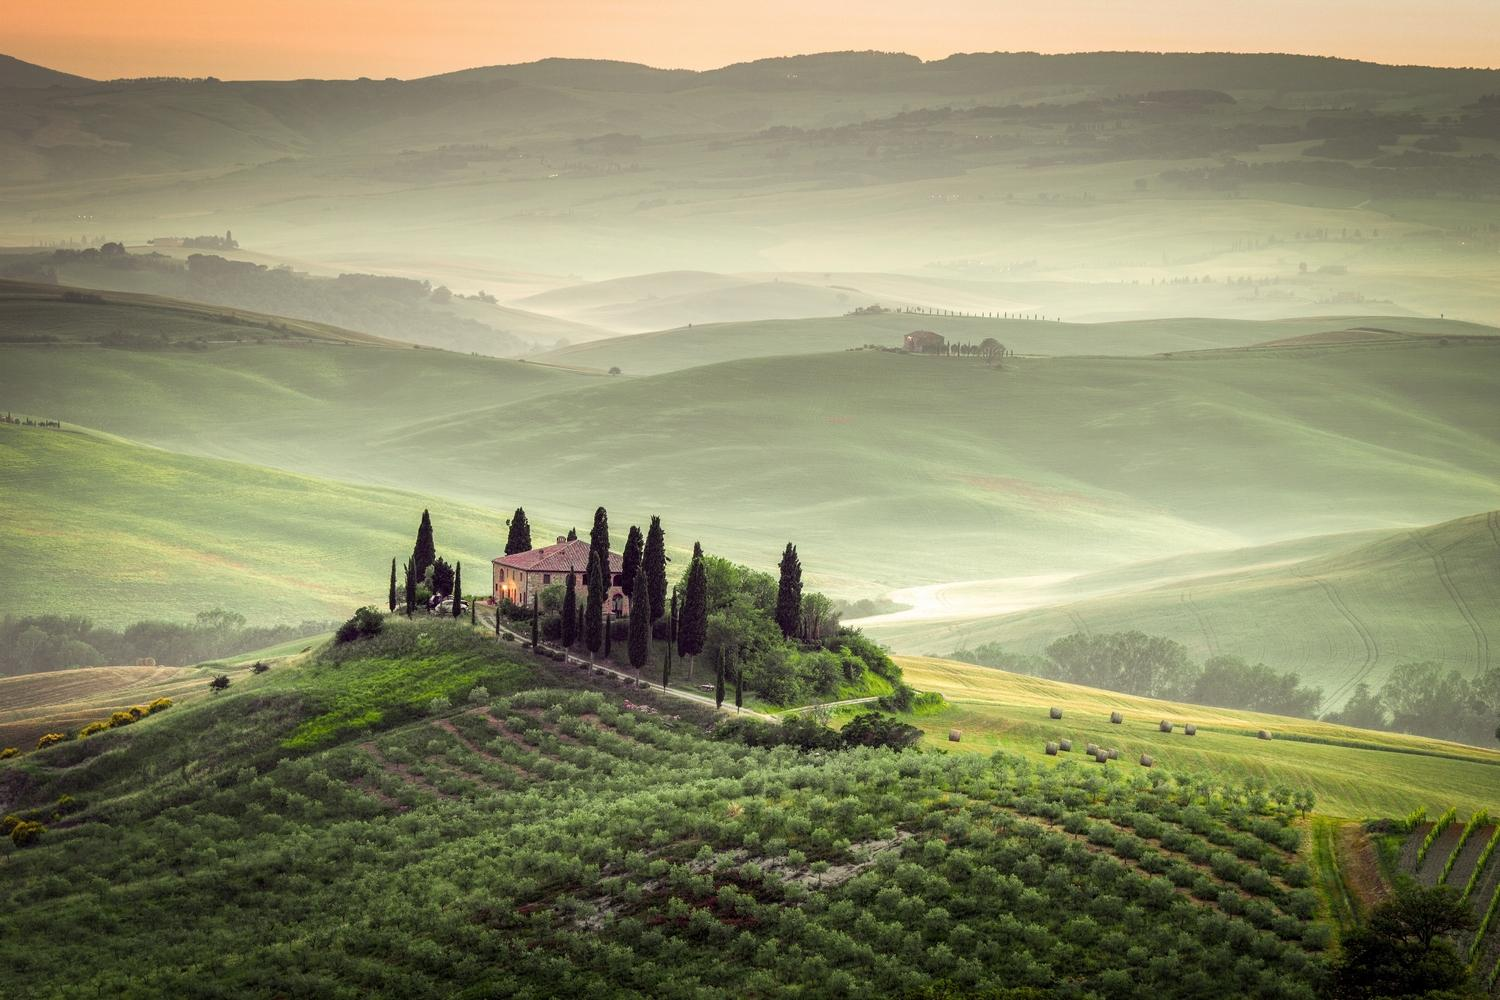 Tuscany's vineyard cloaked landscapes